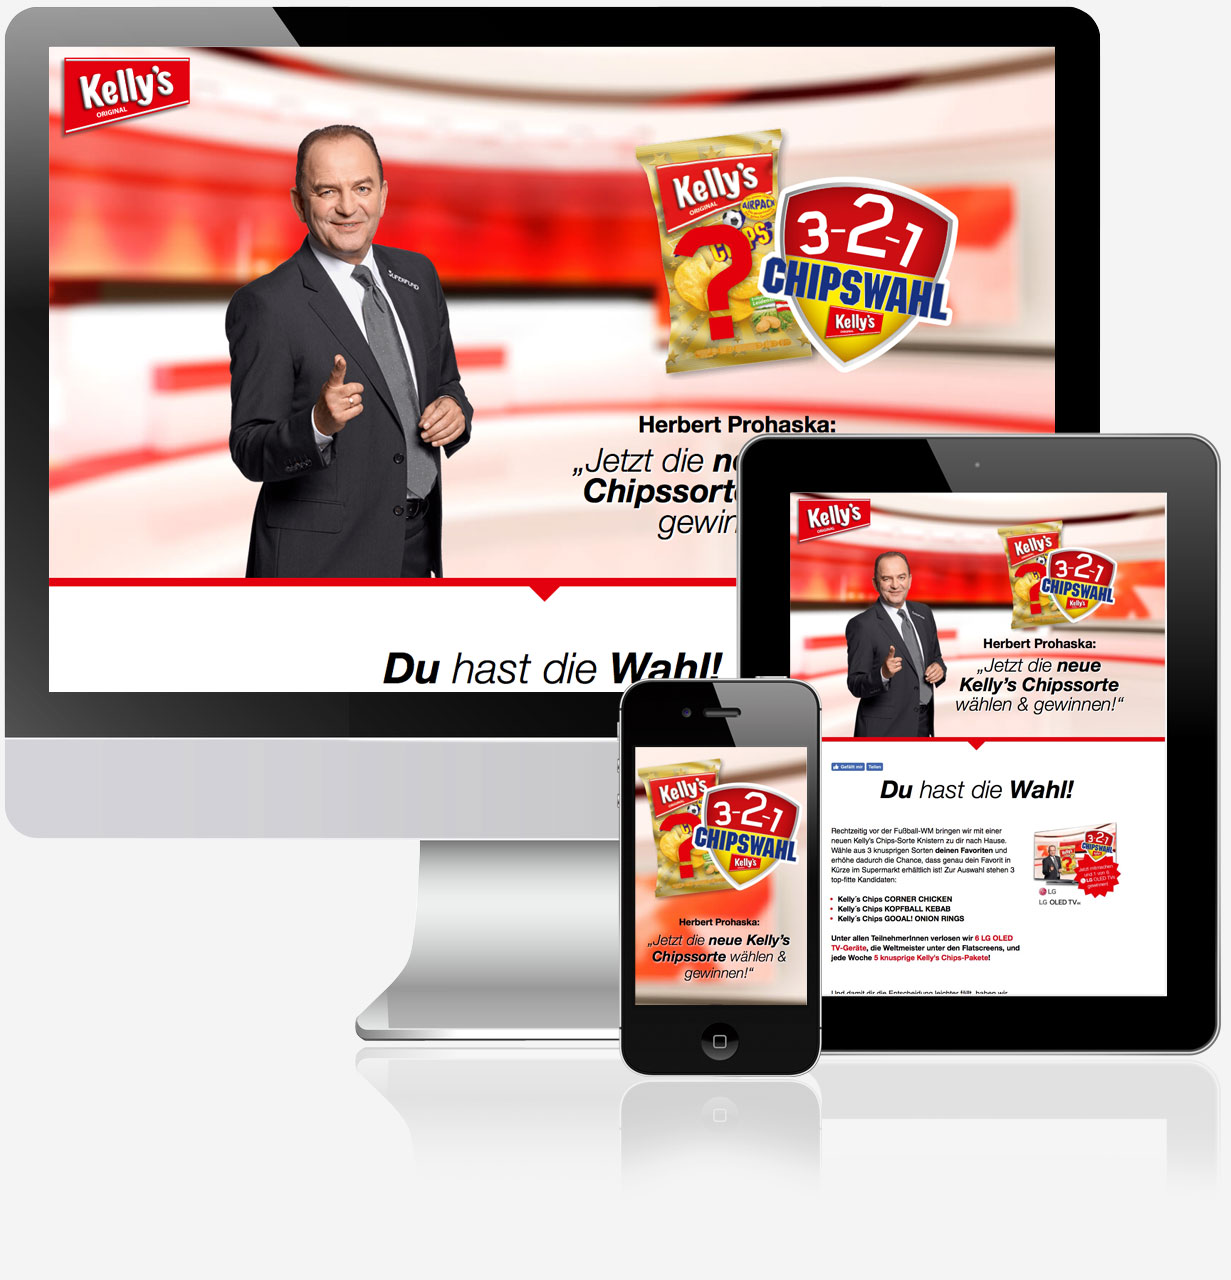 Kellys 321 Chipswahl Referenz C21 new media design Online Agentur Digitalagentur Webagentur Wien